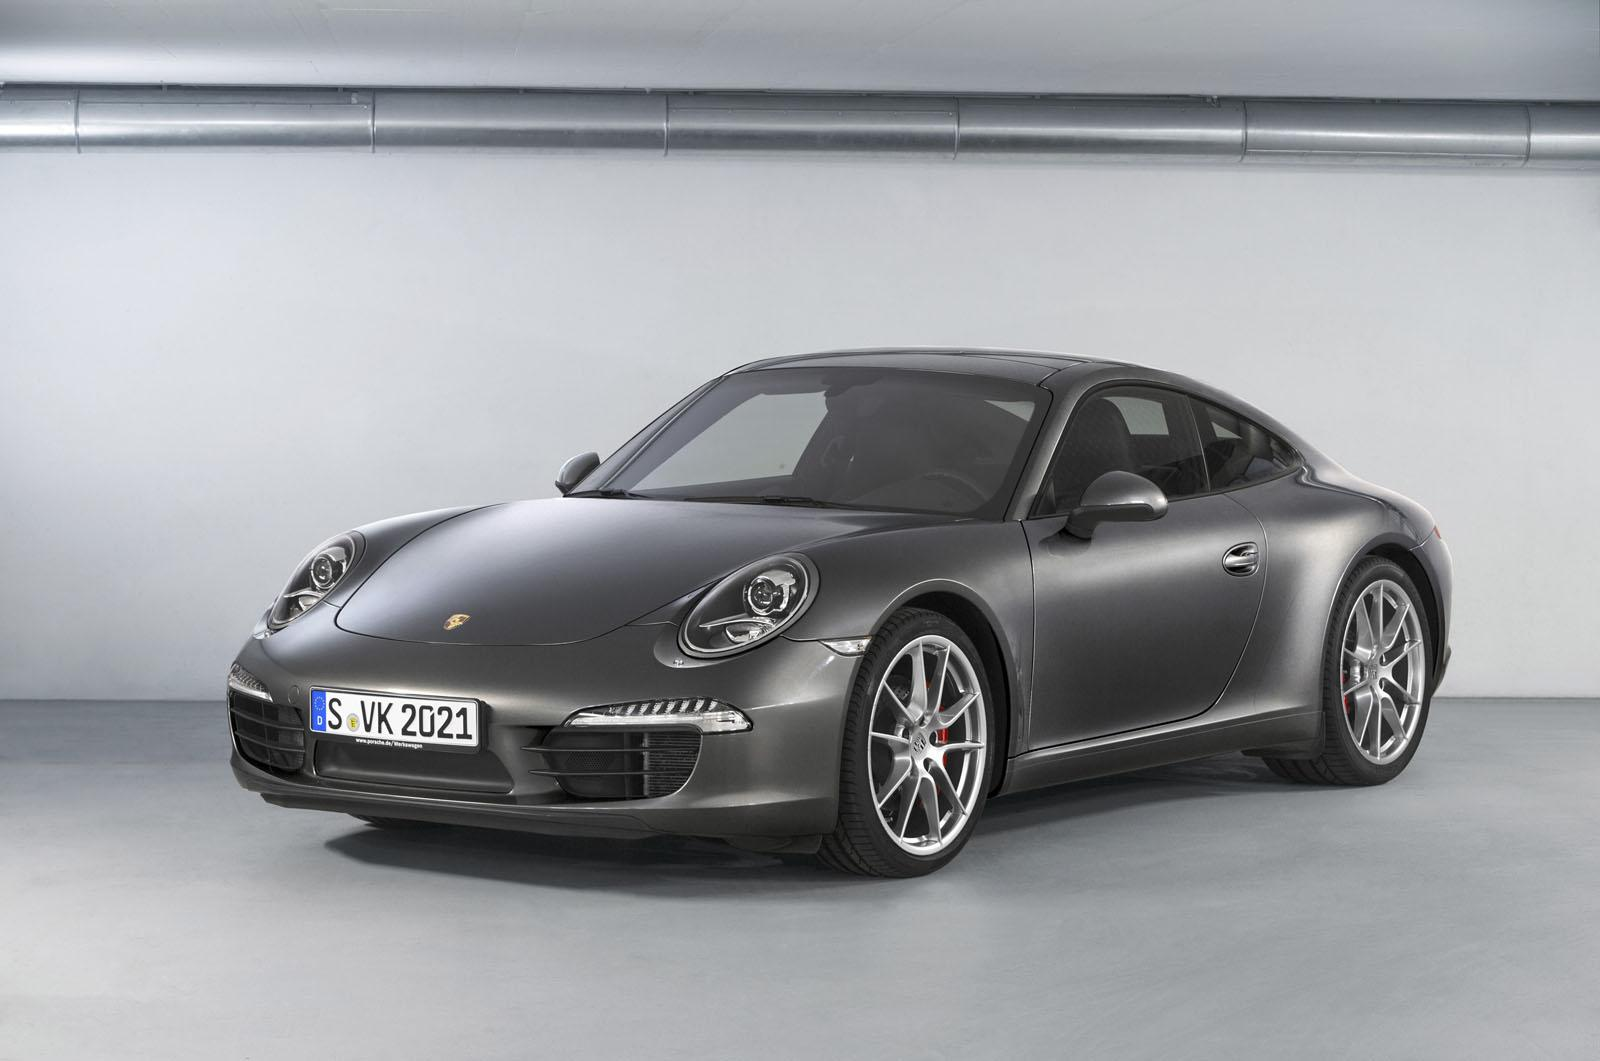 porsche injects extra power into 2011 911 carrera s retrofit powerkit for tequipment 39 s 20th b. Black Bedroom Furniture Sets. Home Design Ideas